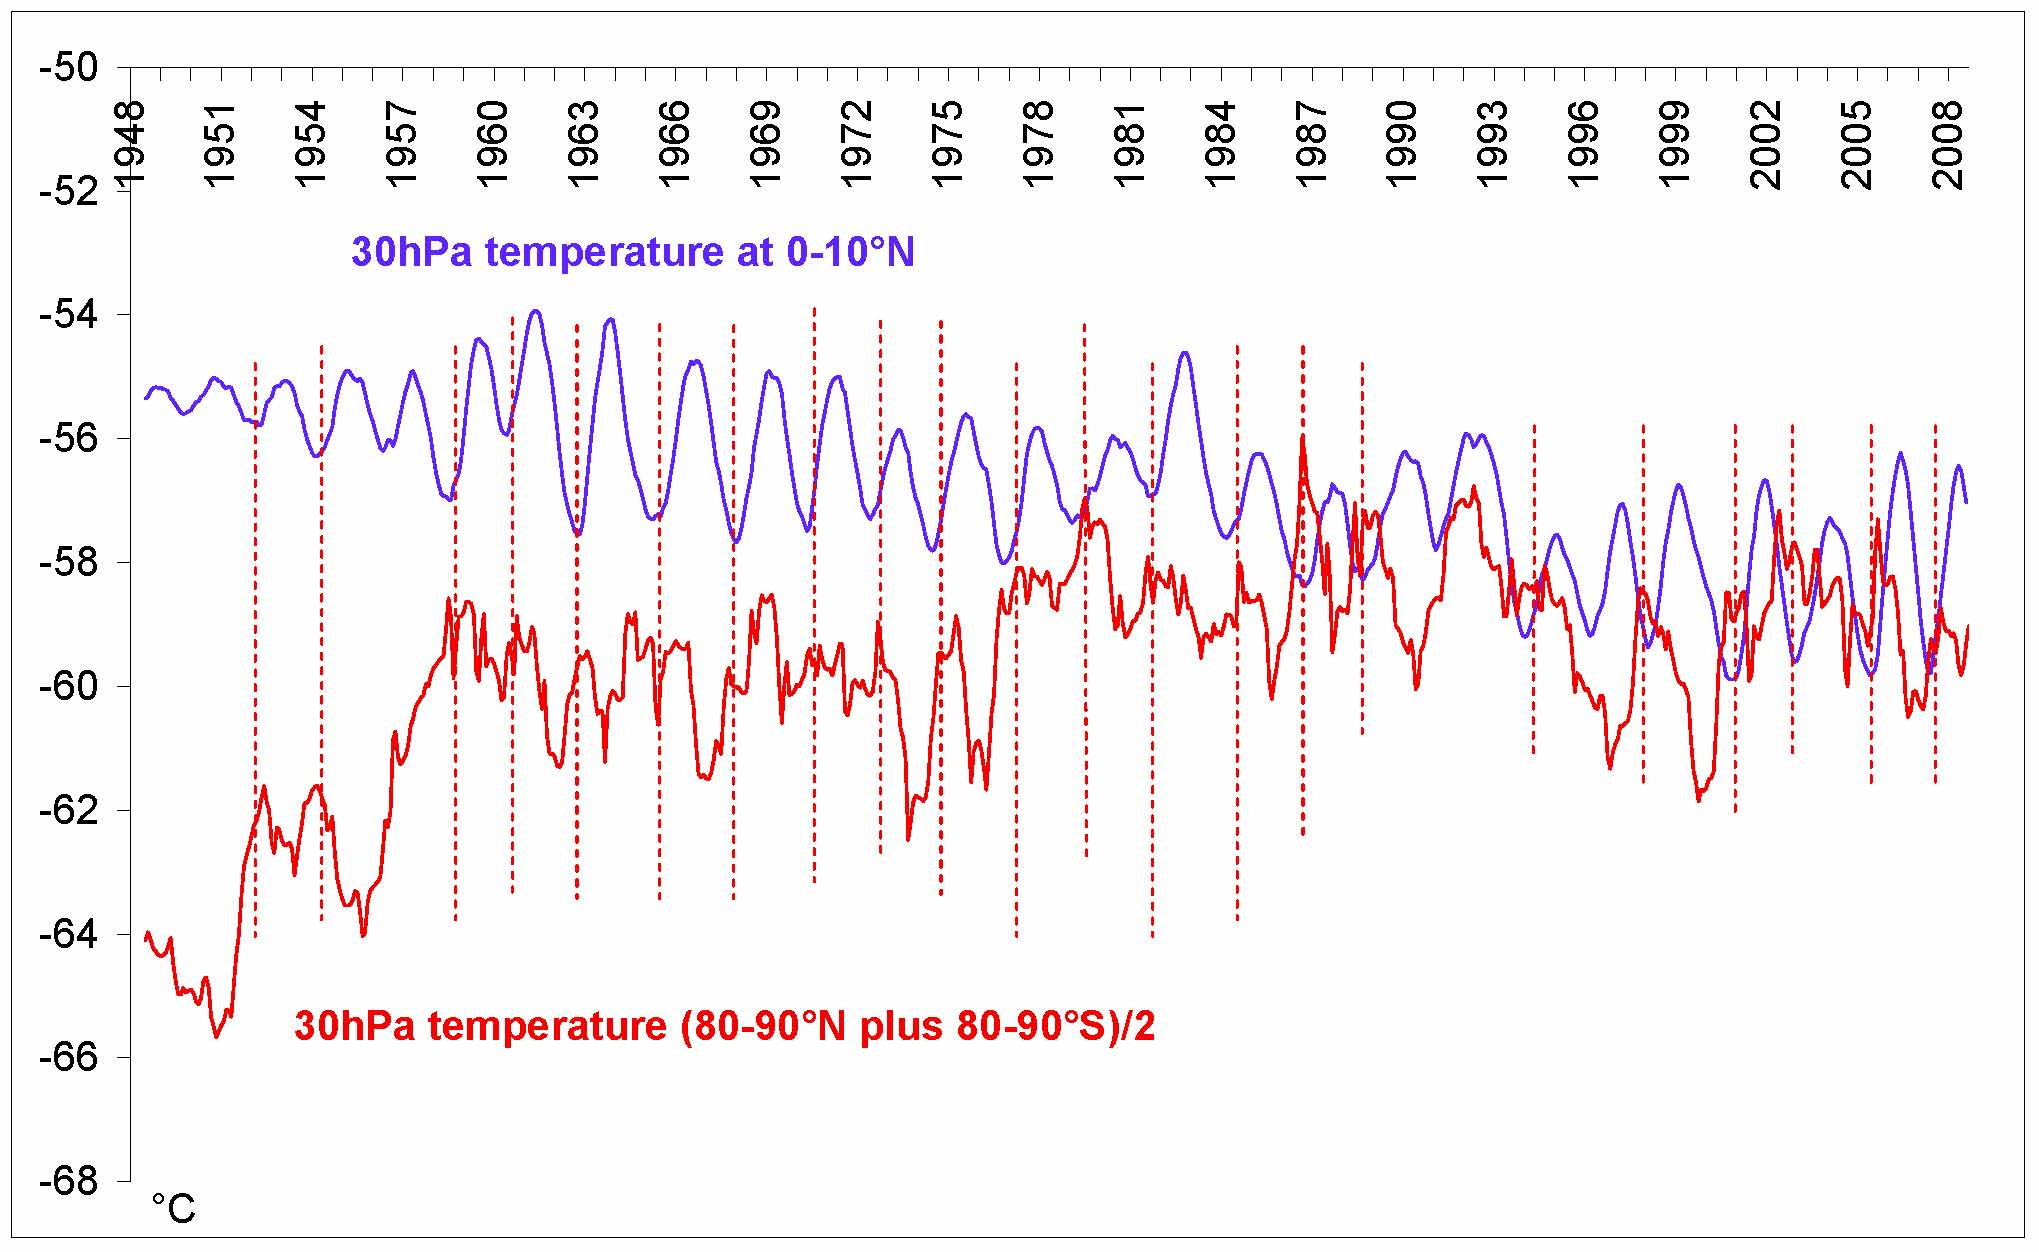 Fig. 7  Temperature increases at 30hPa in the polar stratosphere as it falls at 30hPa in the equatorial stratosphere